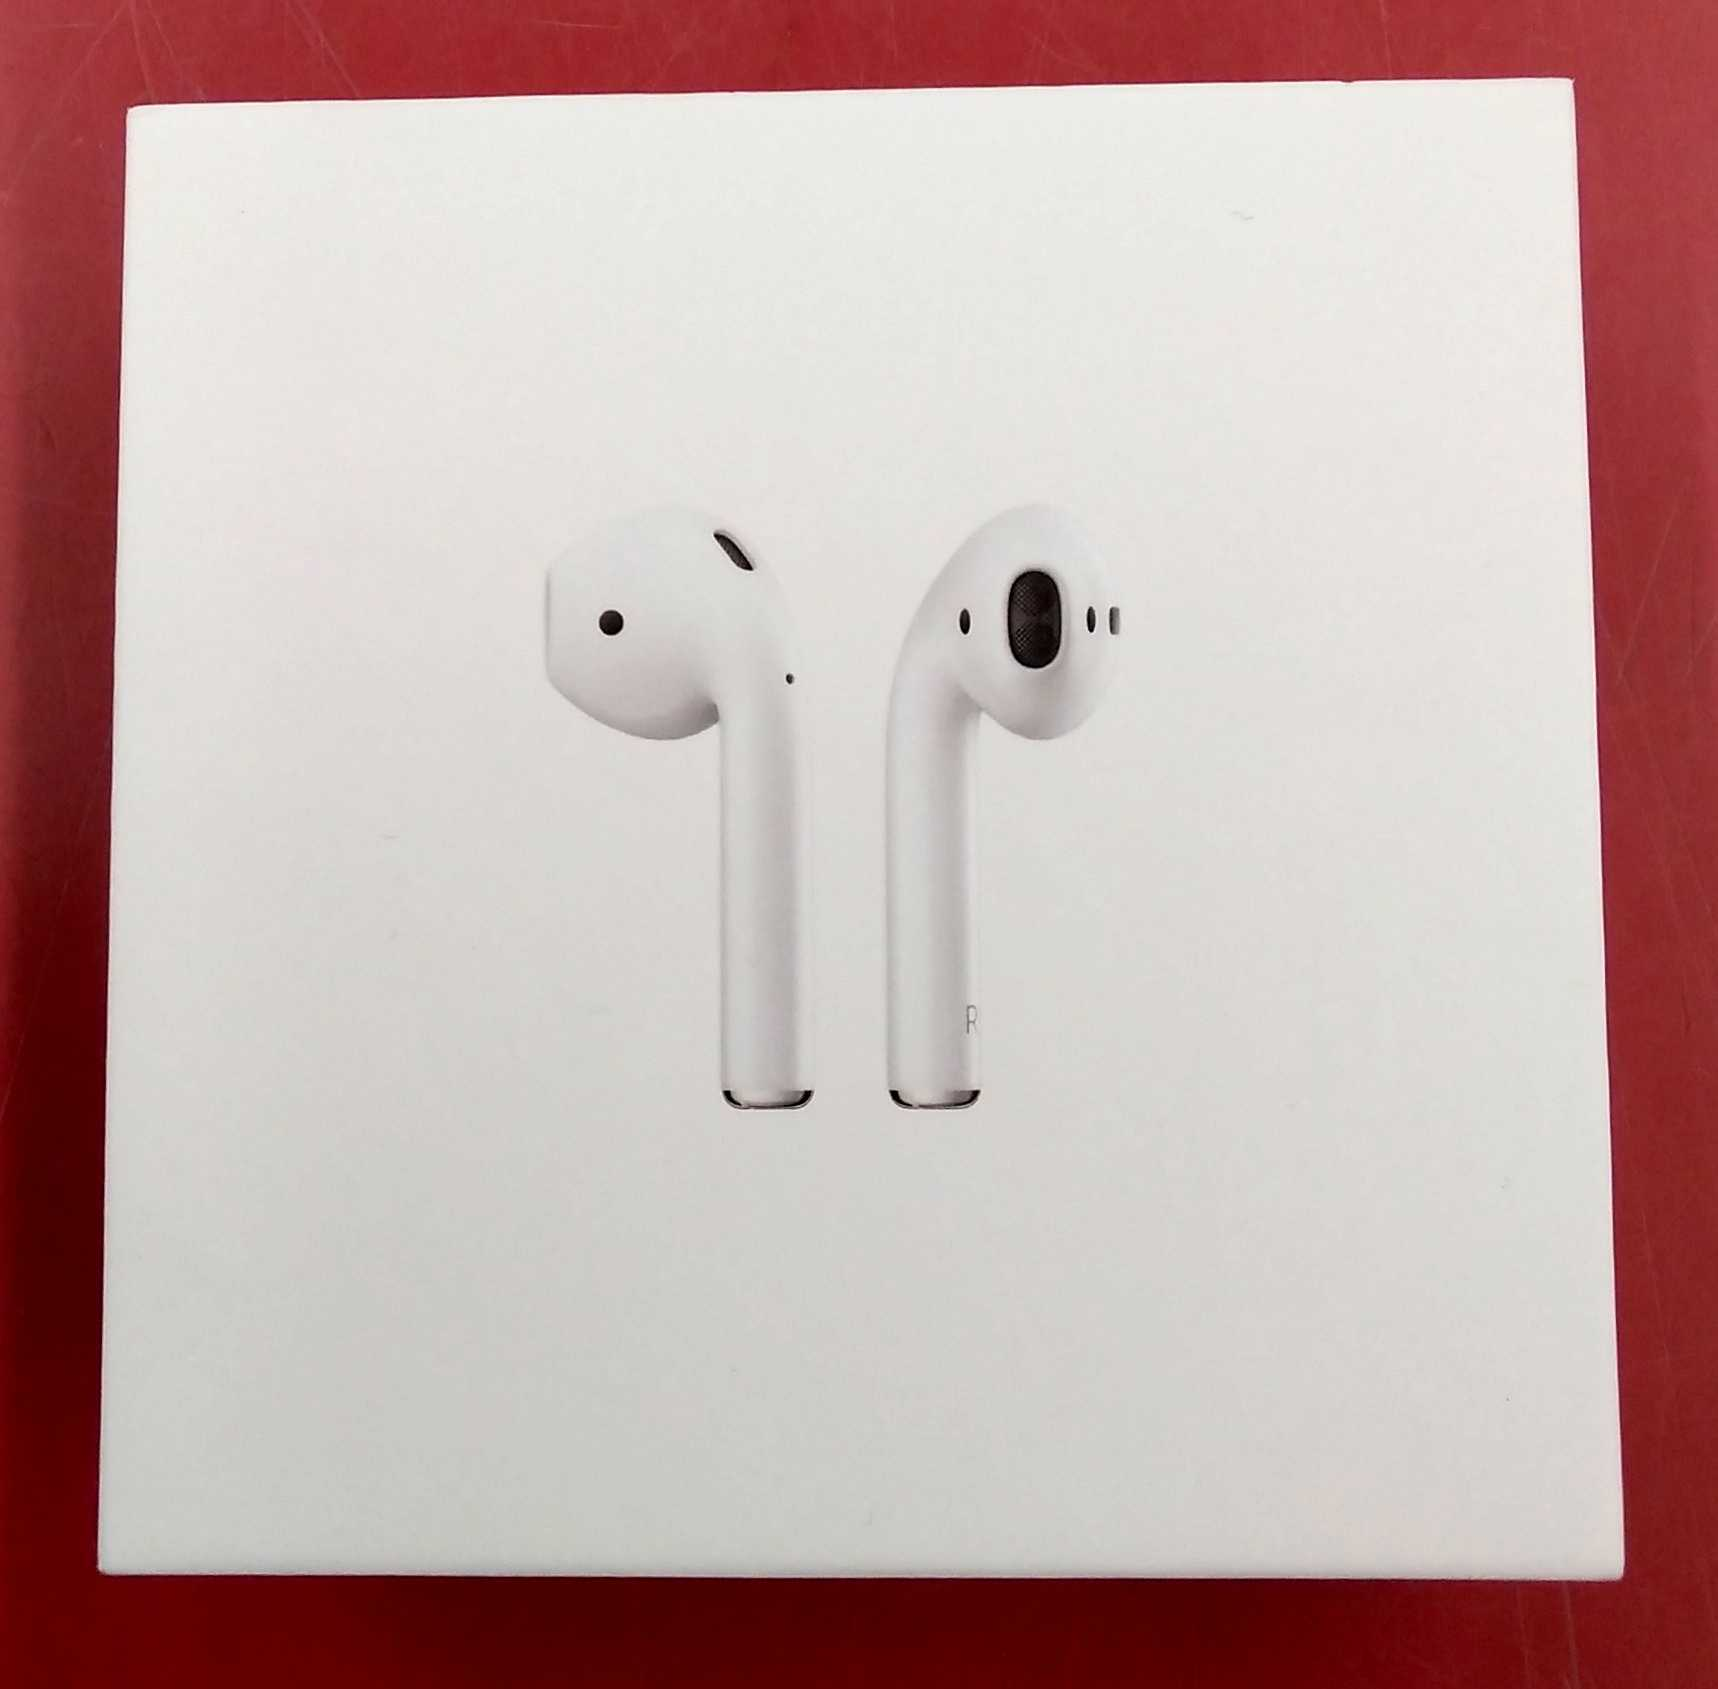 AIRPODS|APPLE